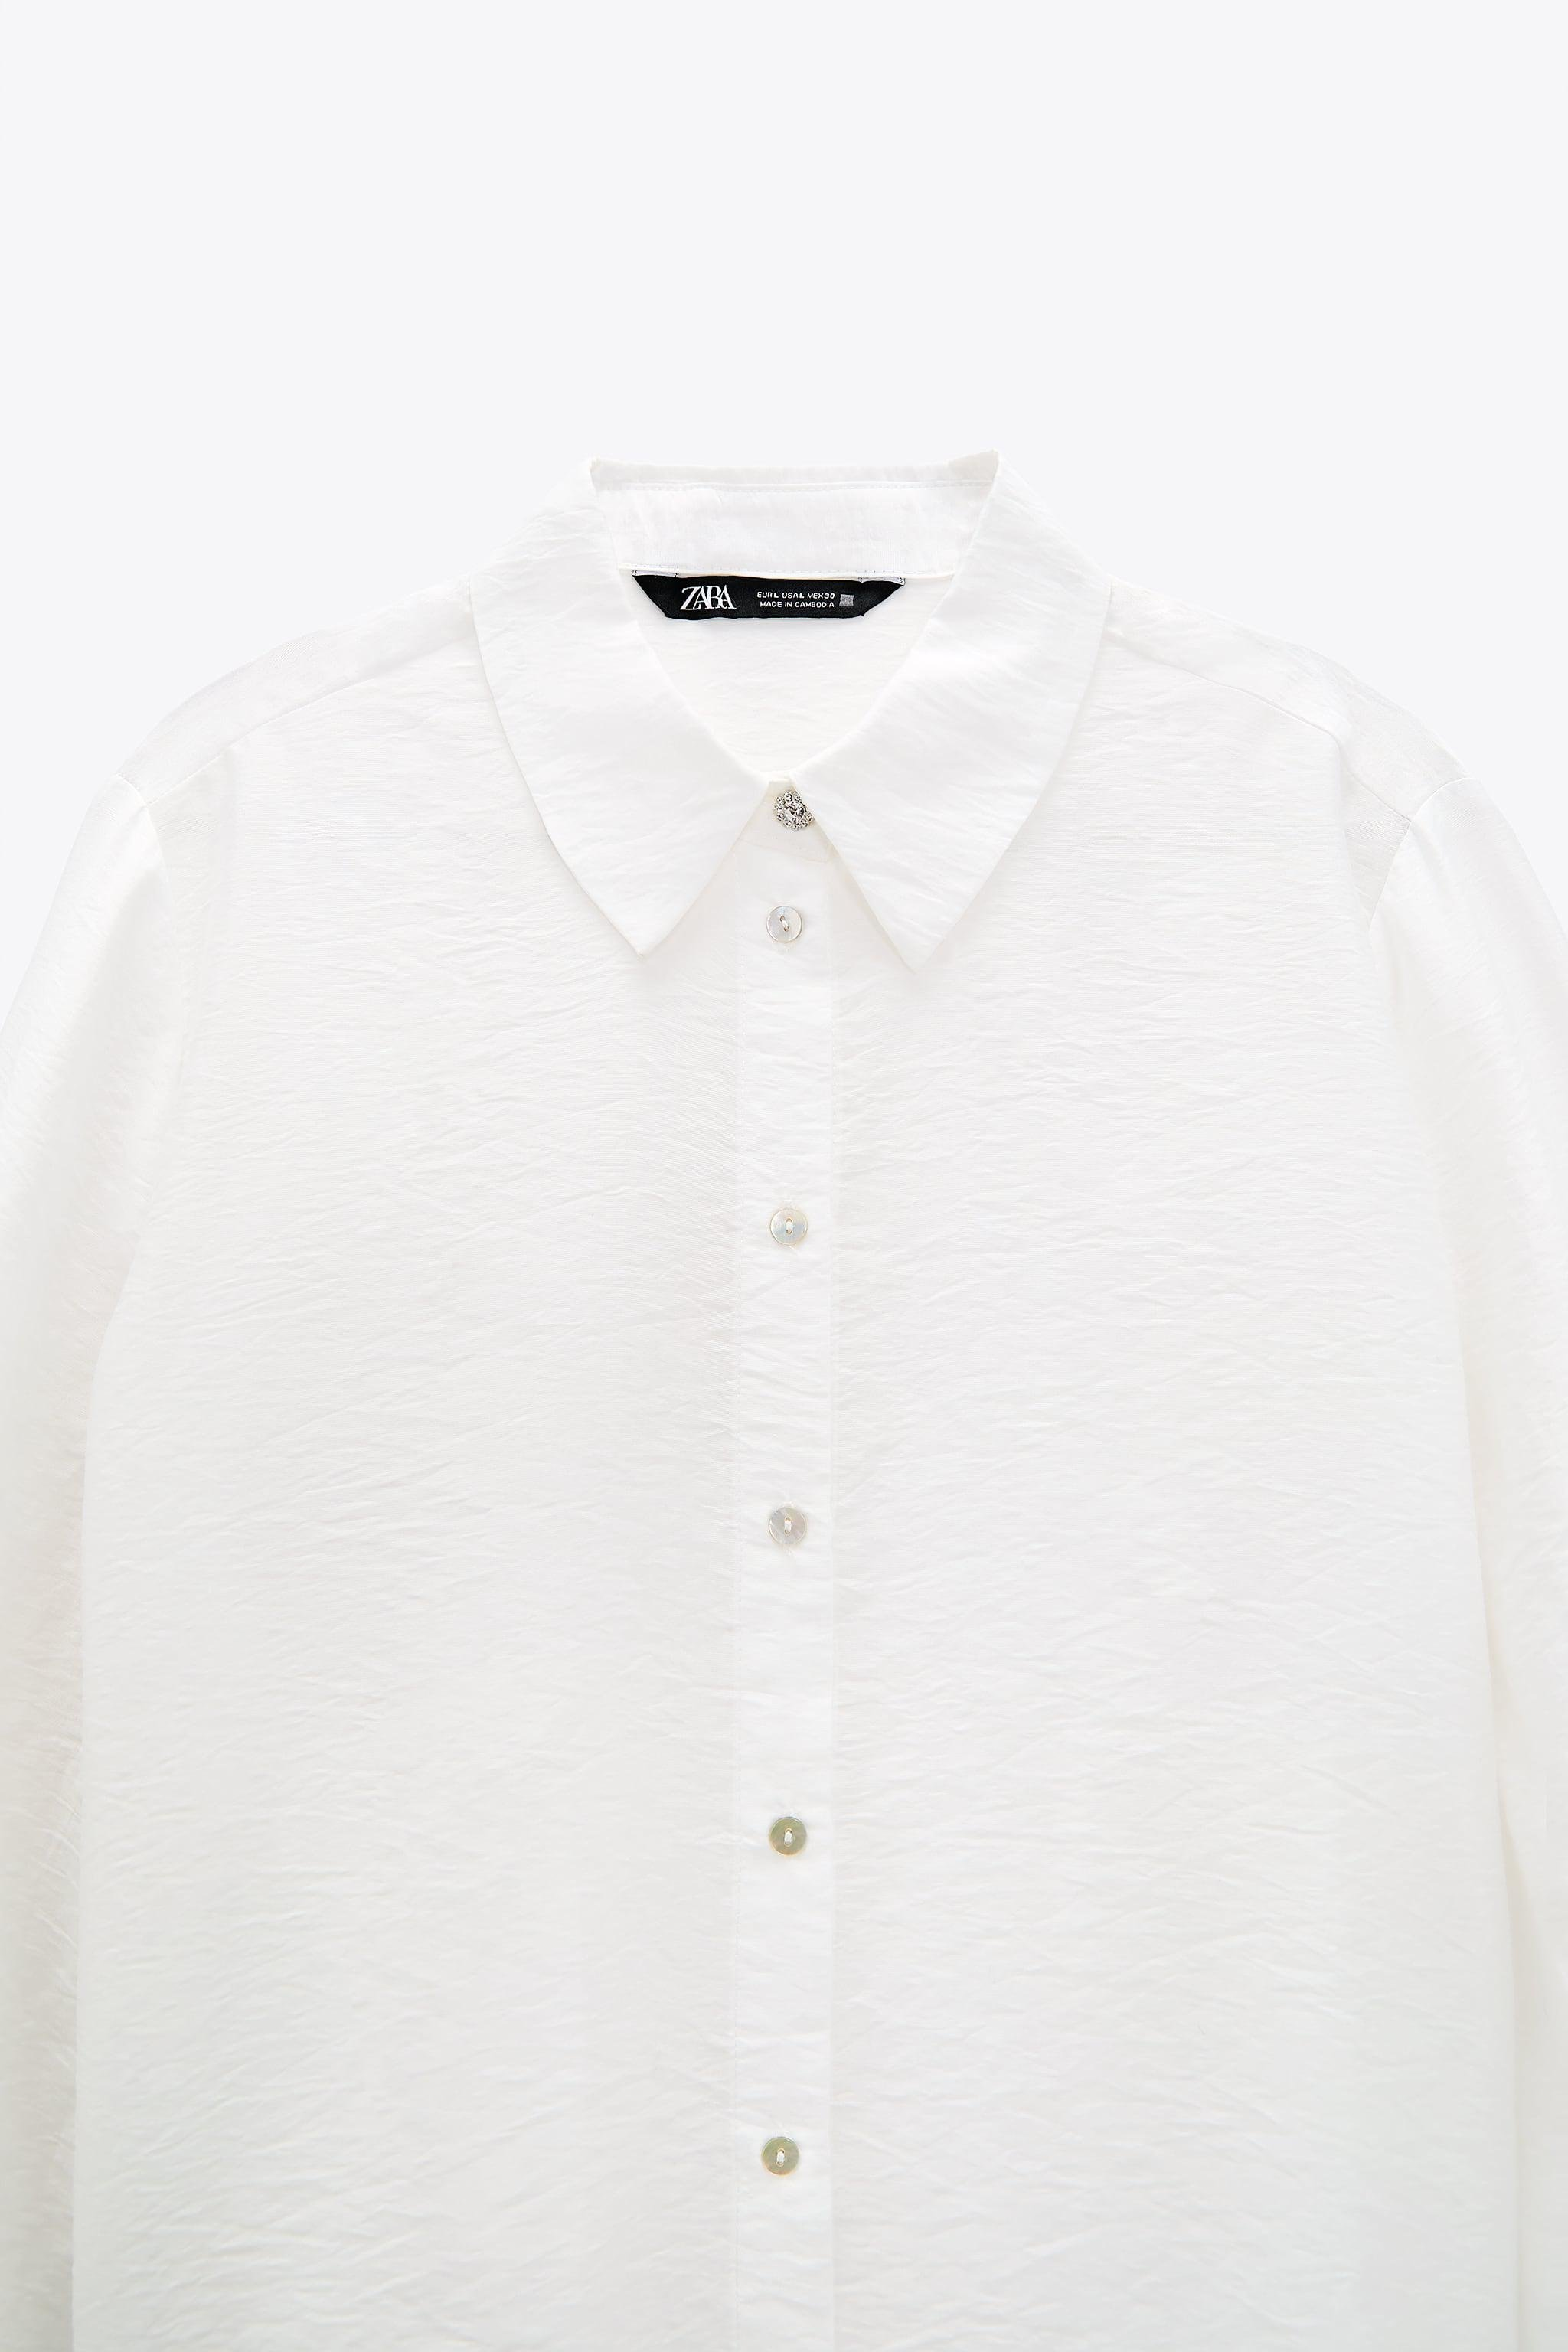 SHIRT WITH JEWEL BUTTONS 8